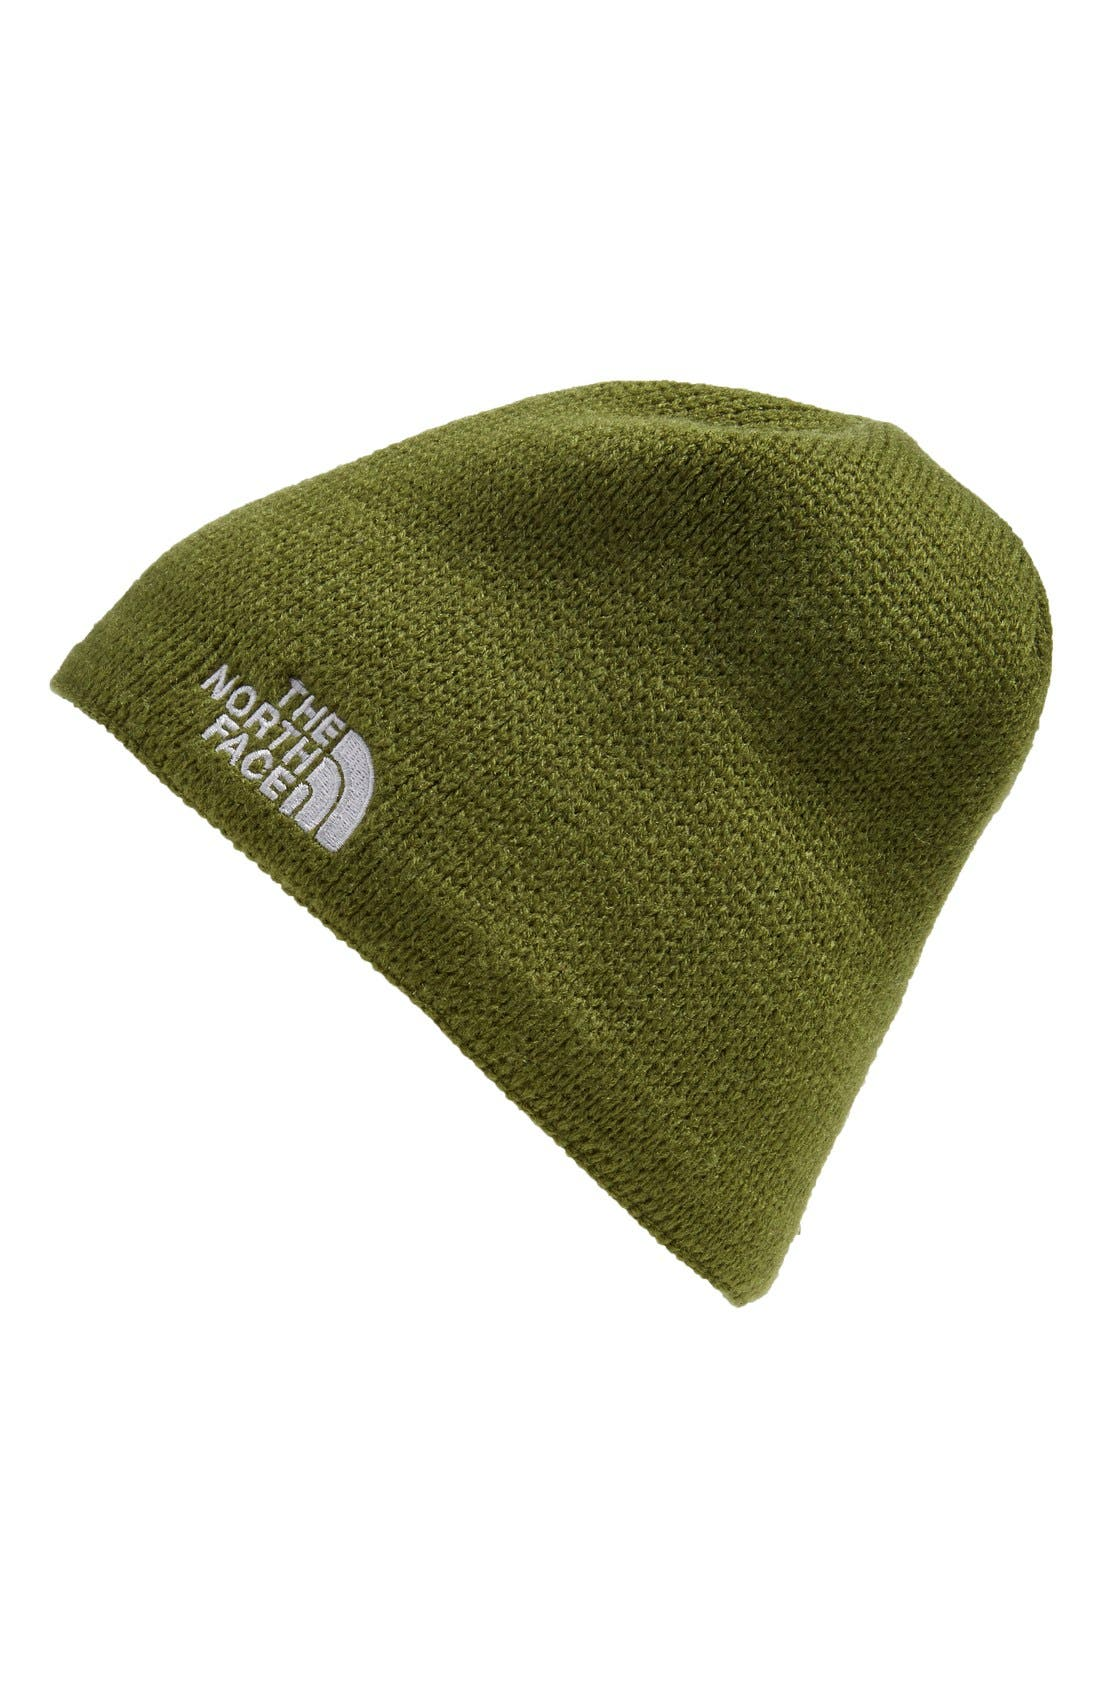 'Bones' Microfleece Beanie,                             Main thumbnail 5, color,